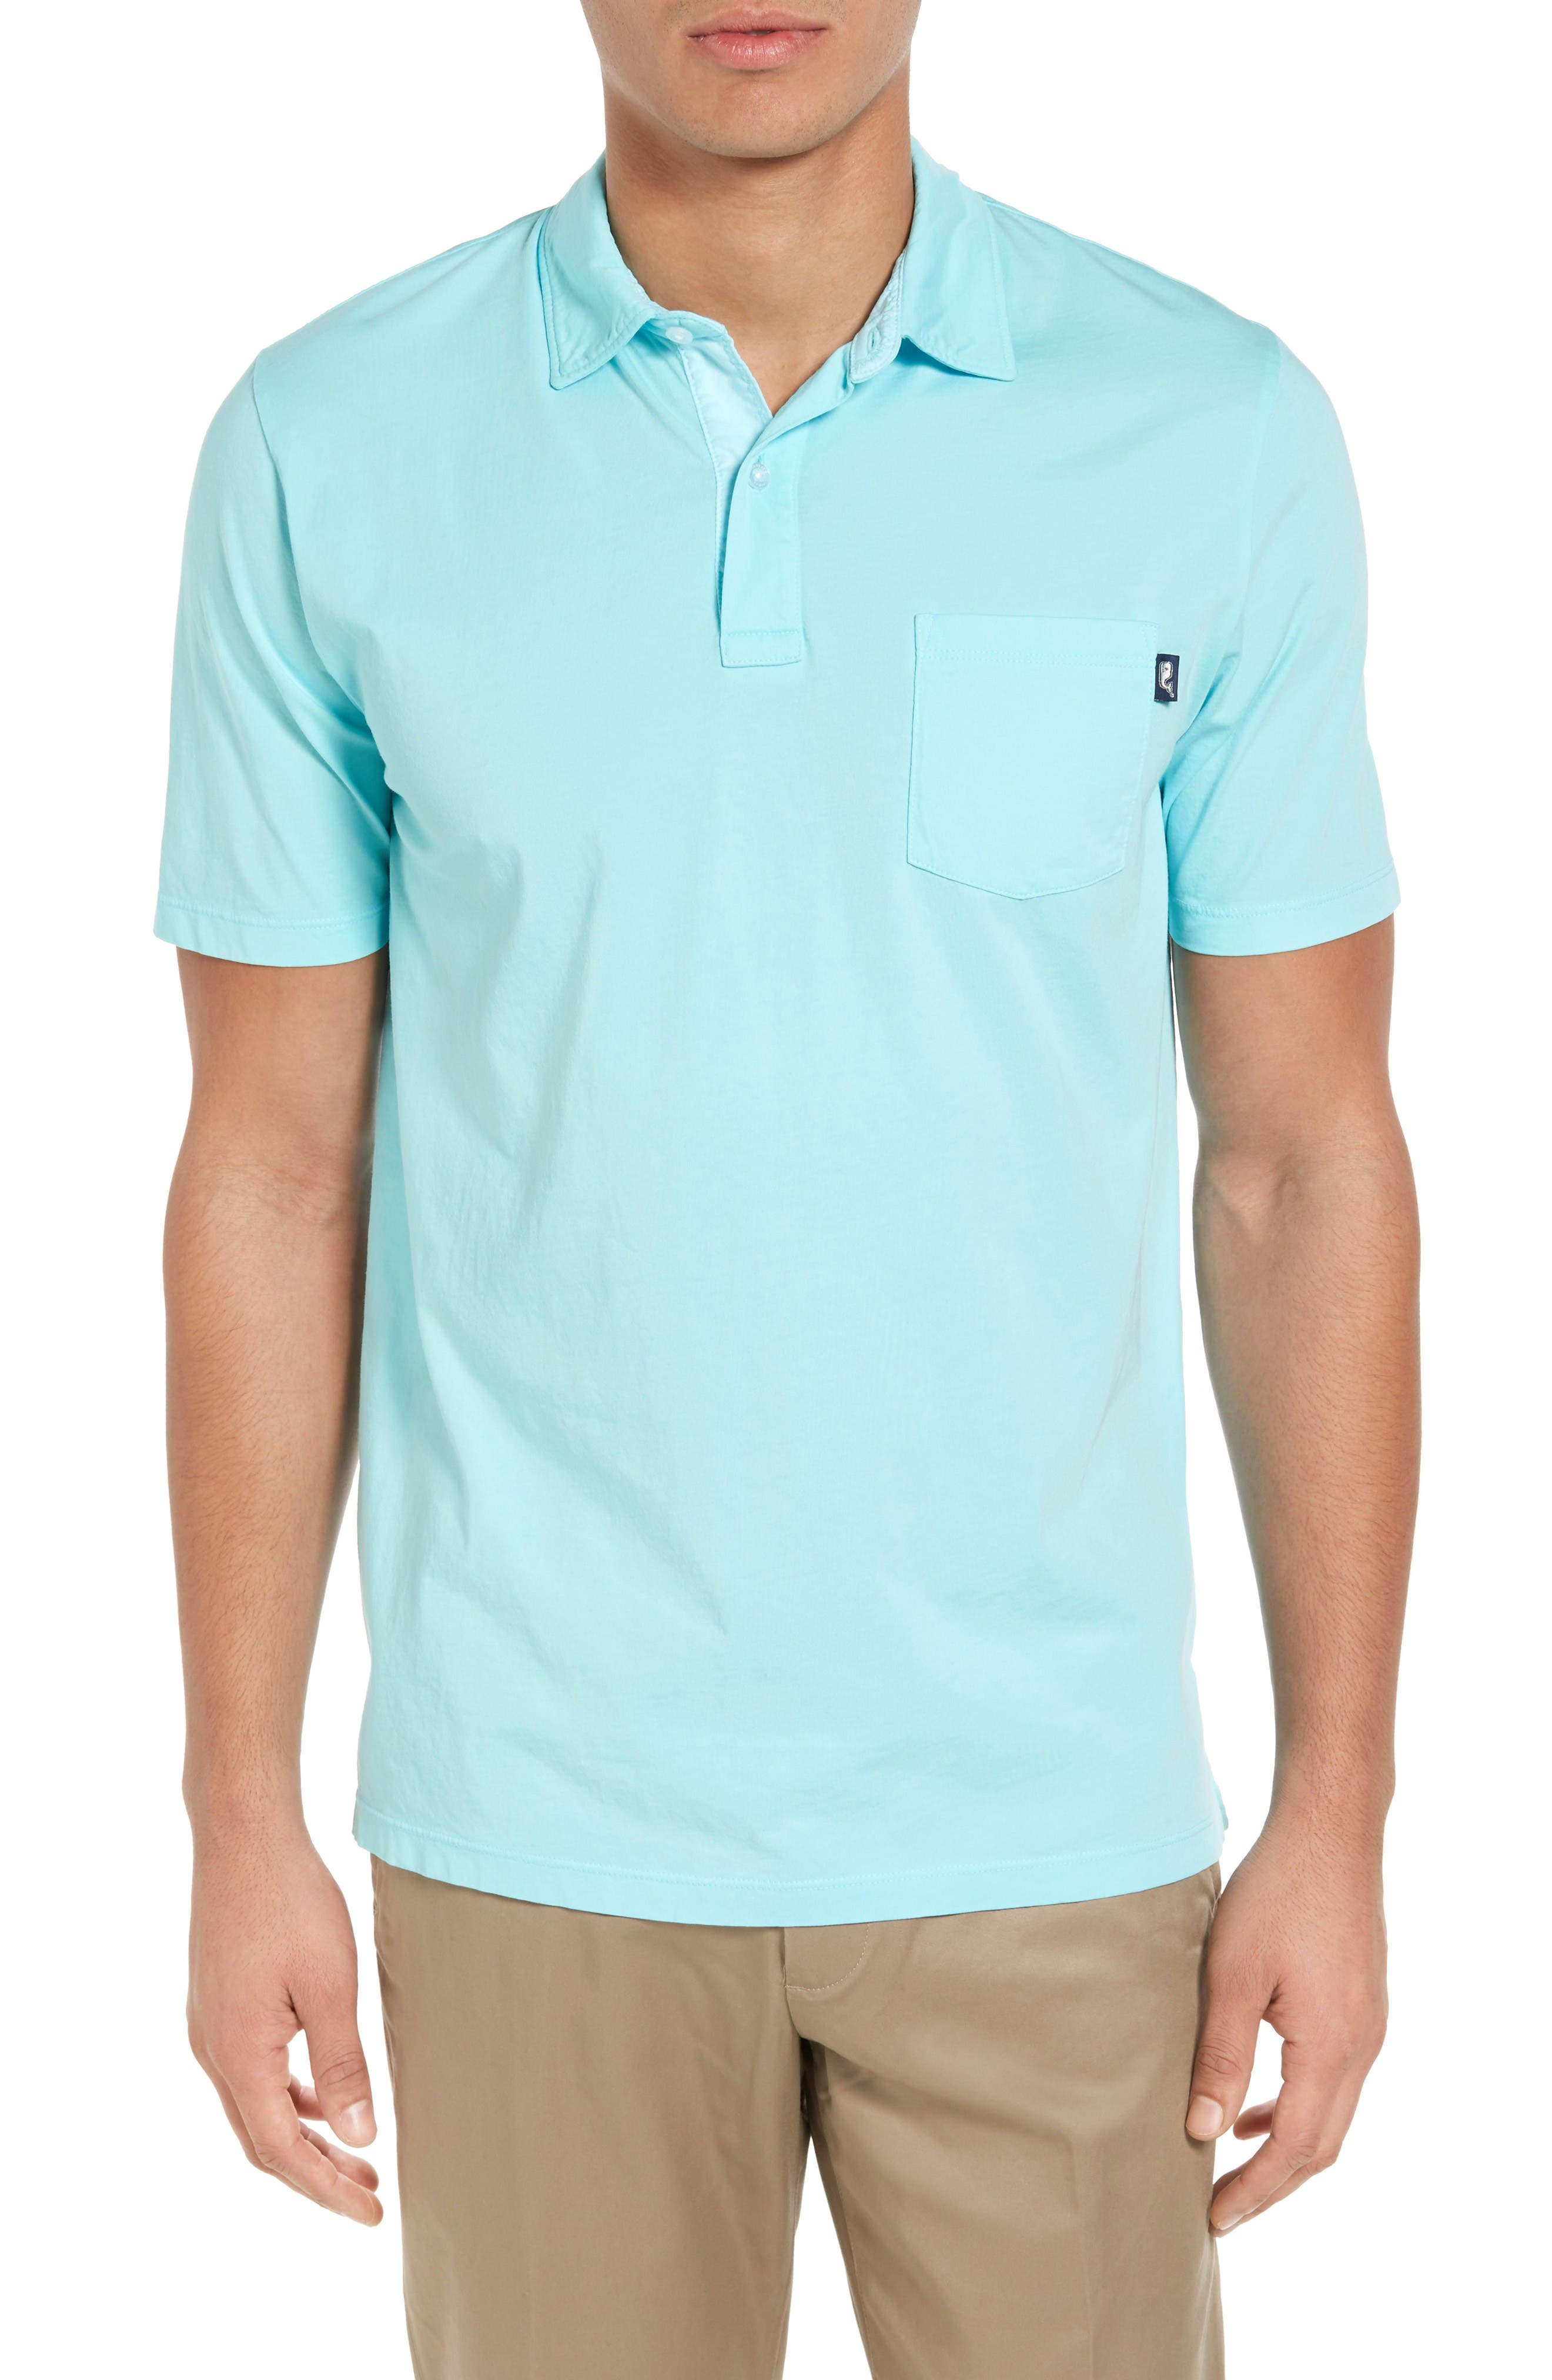 Vineyard Vines Garment Dyed Jersey Polo